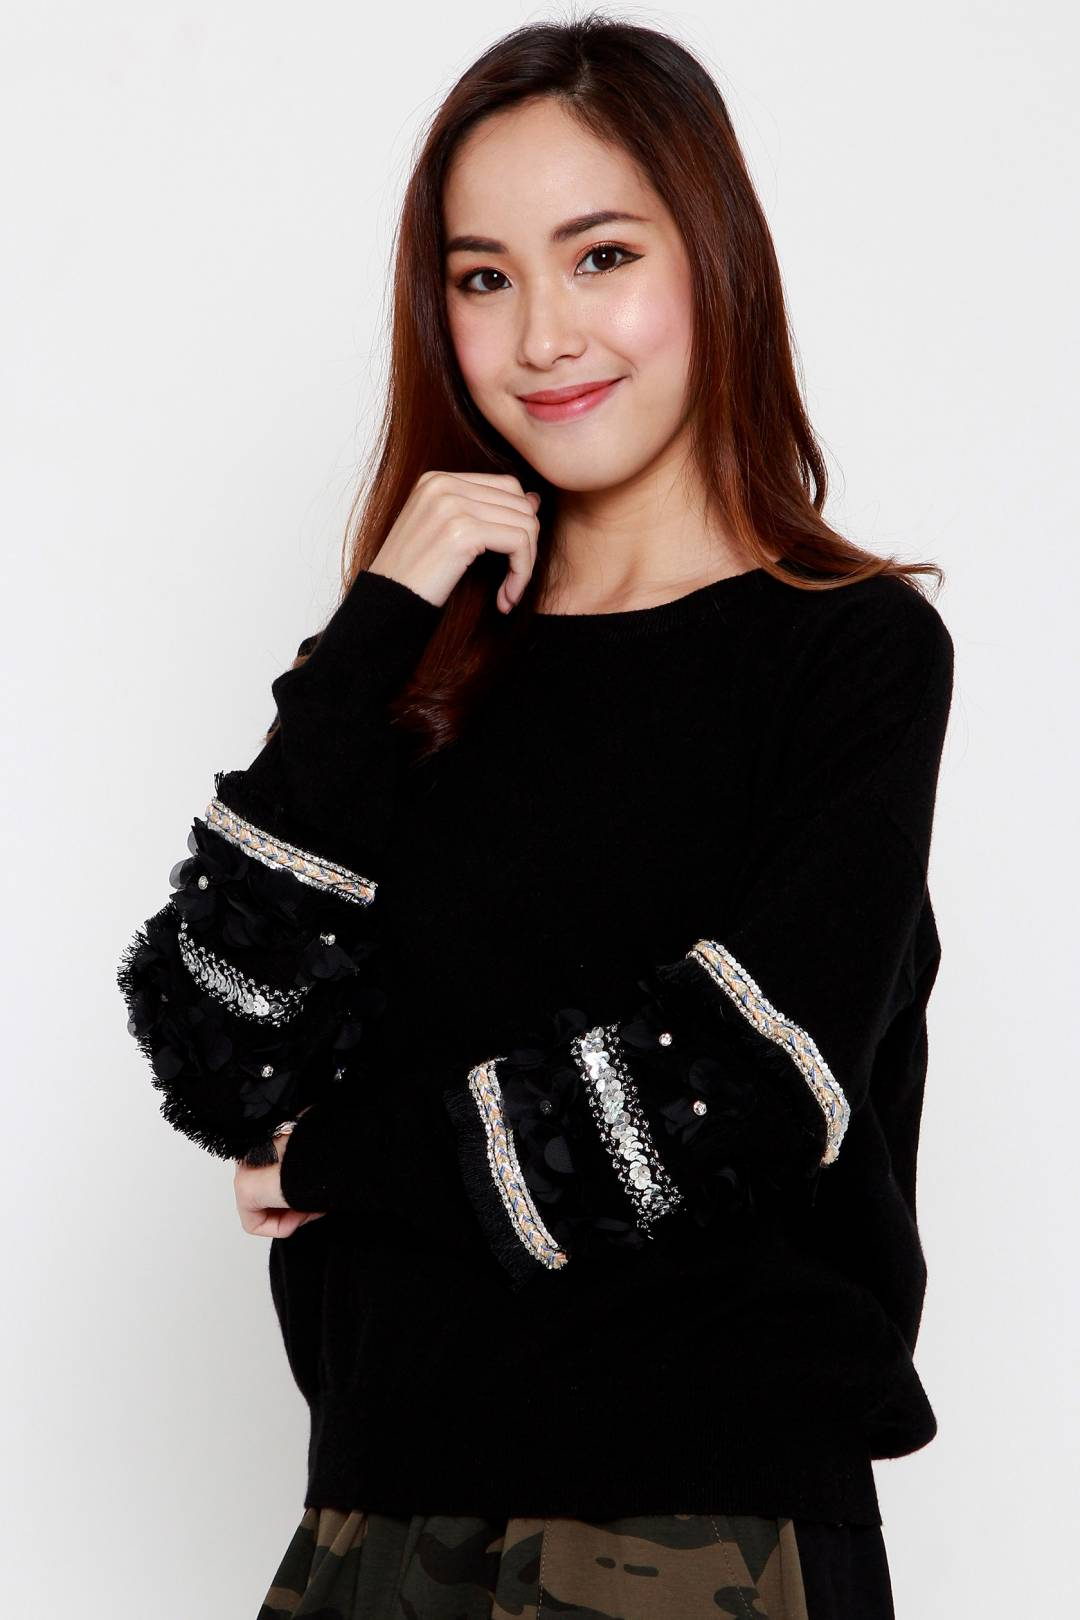 Caitlin Knit Shimmer Top in Black